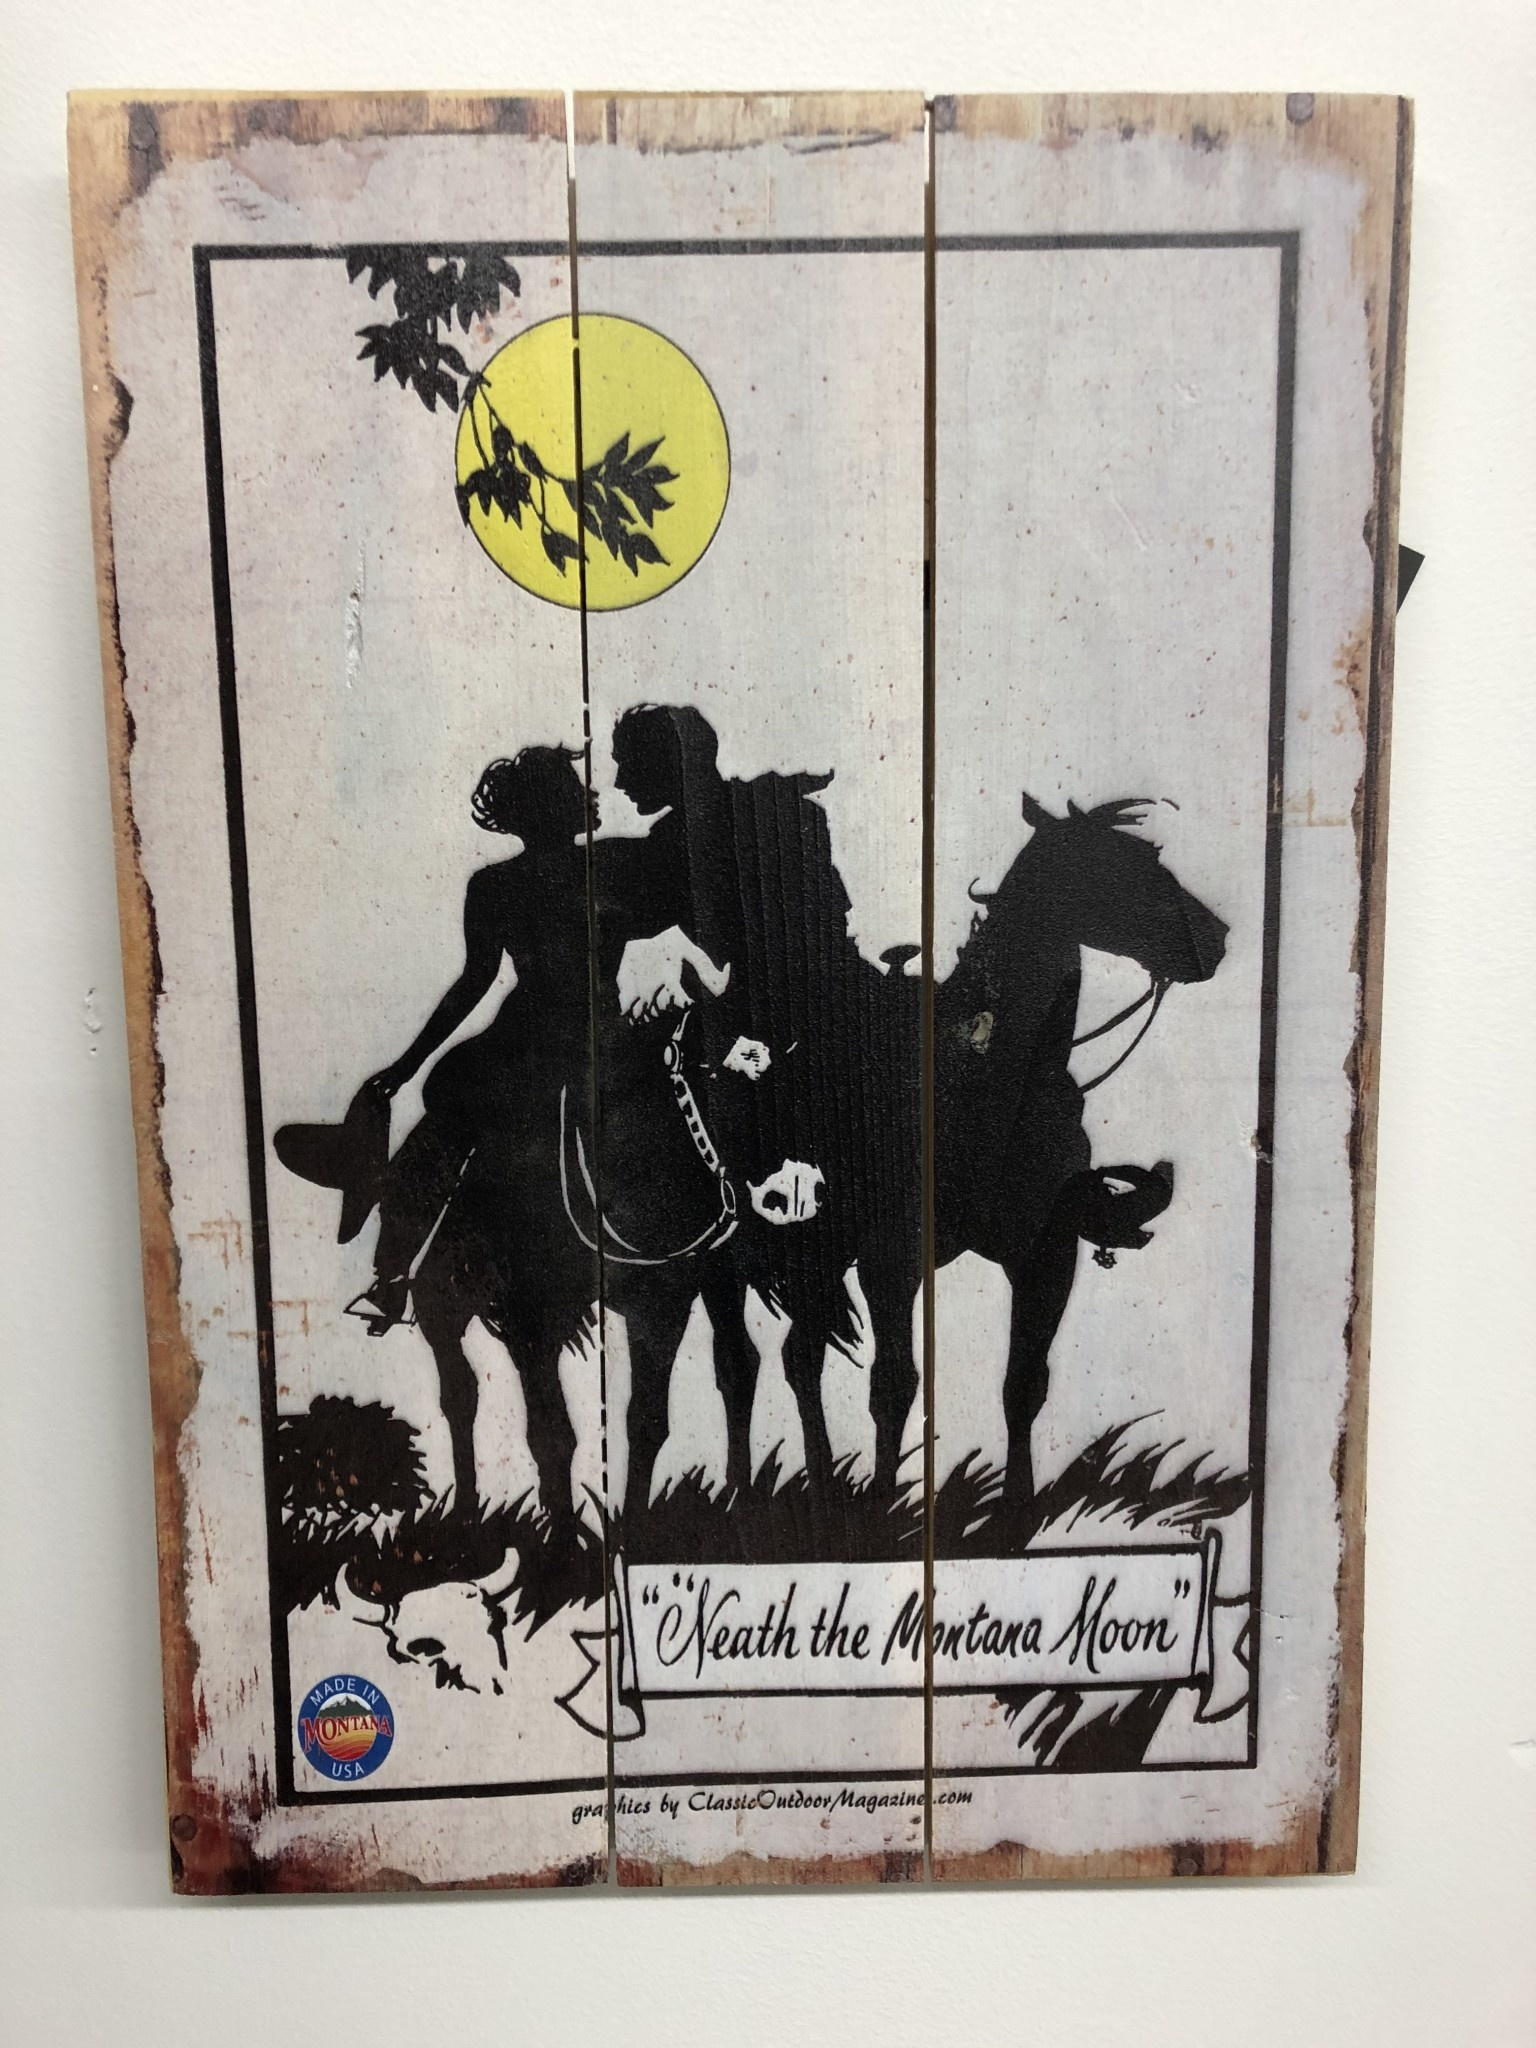 Classic Outdoor Magazines #21  Neath A Montana Moon 14x20 Wood Sign